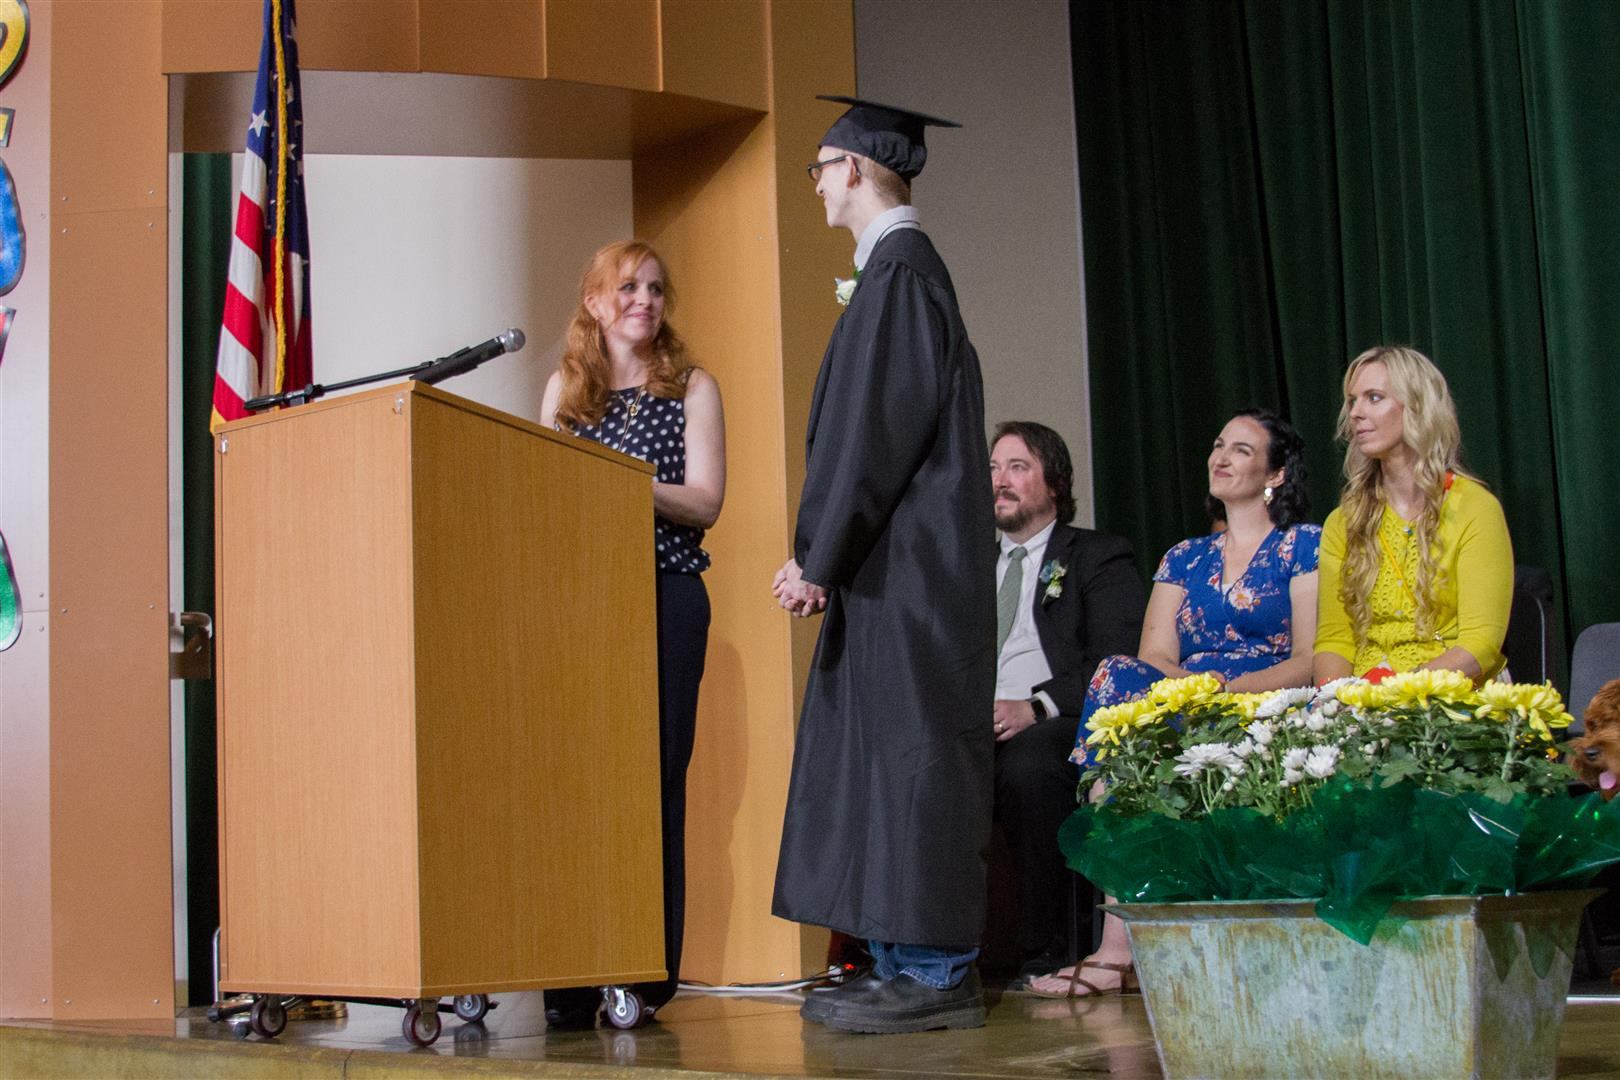 1560450000-team-high-class-of-2019-commencement-21__large_